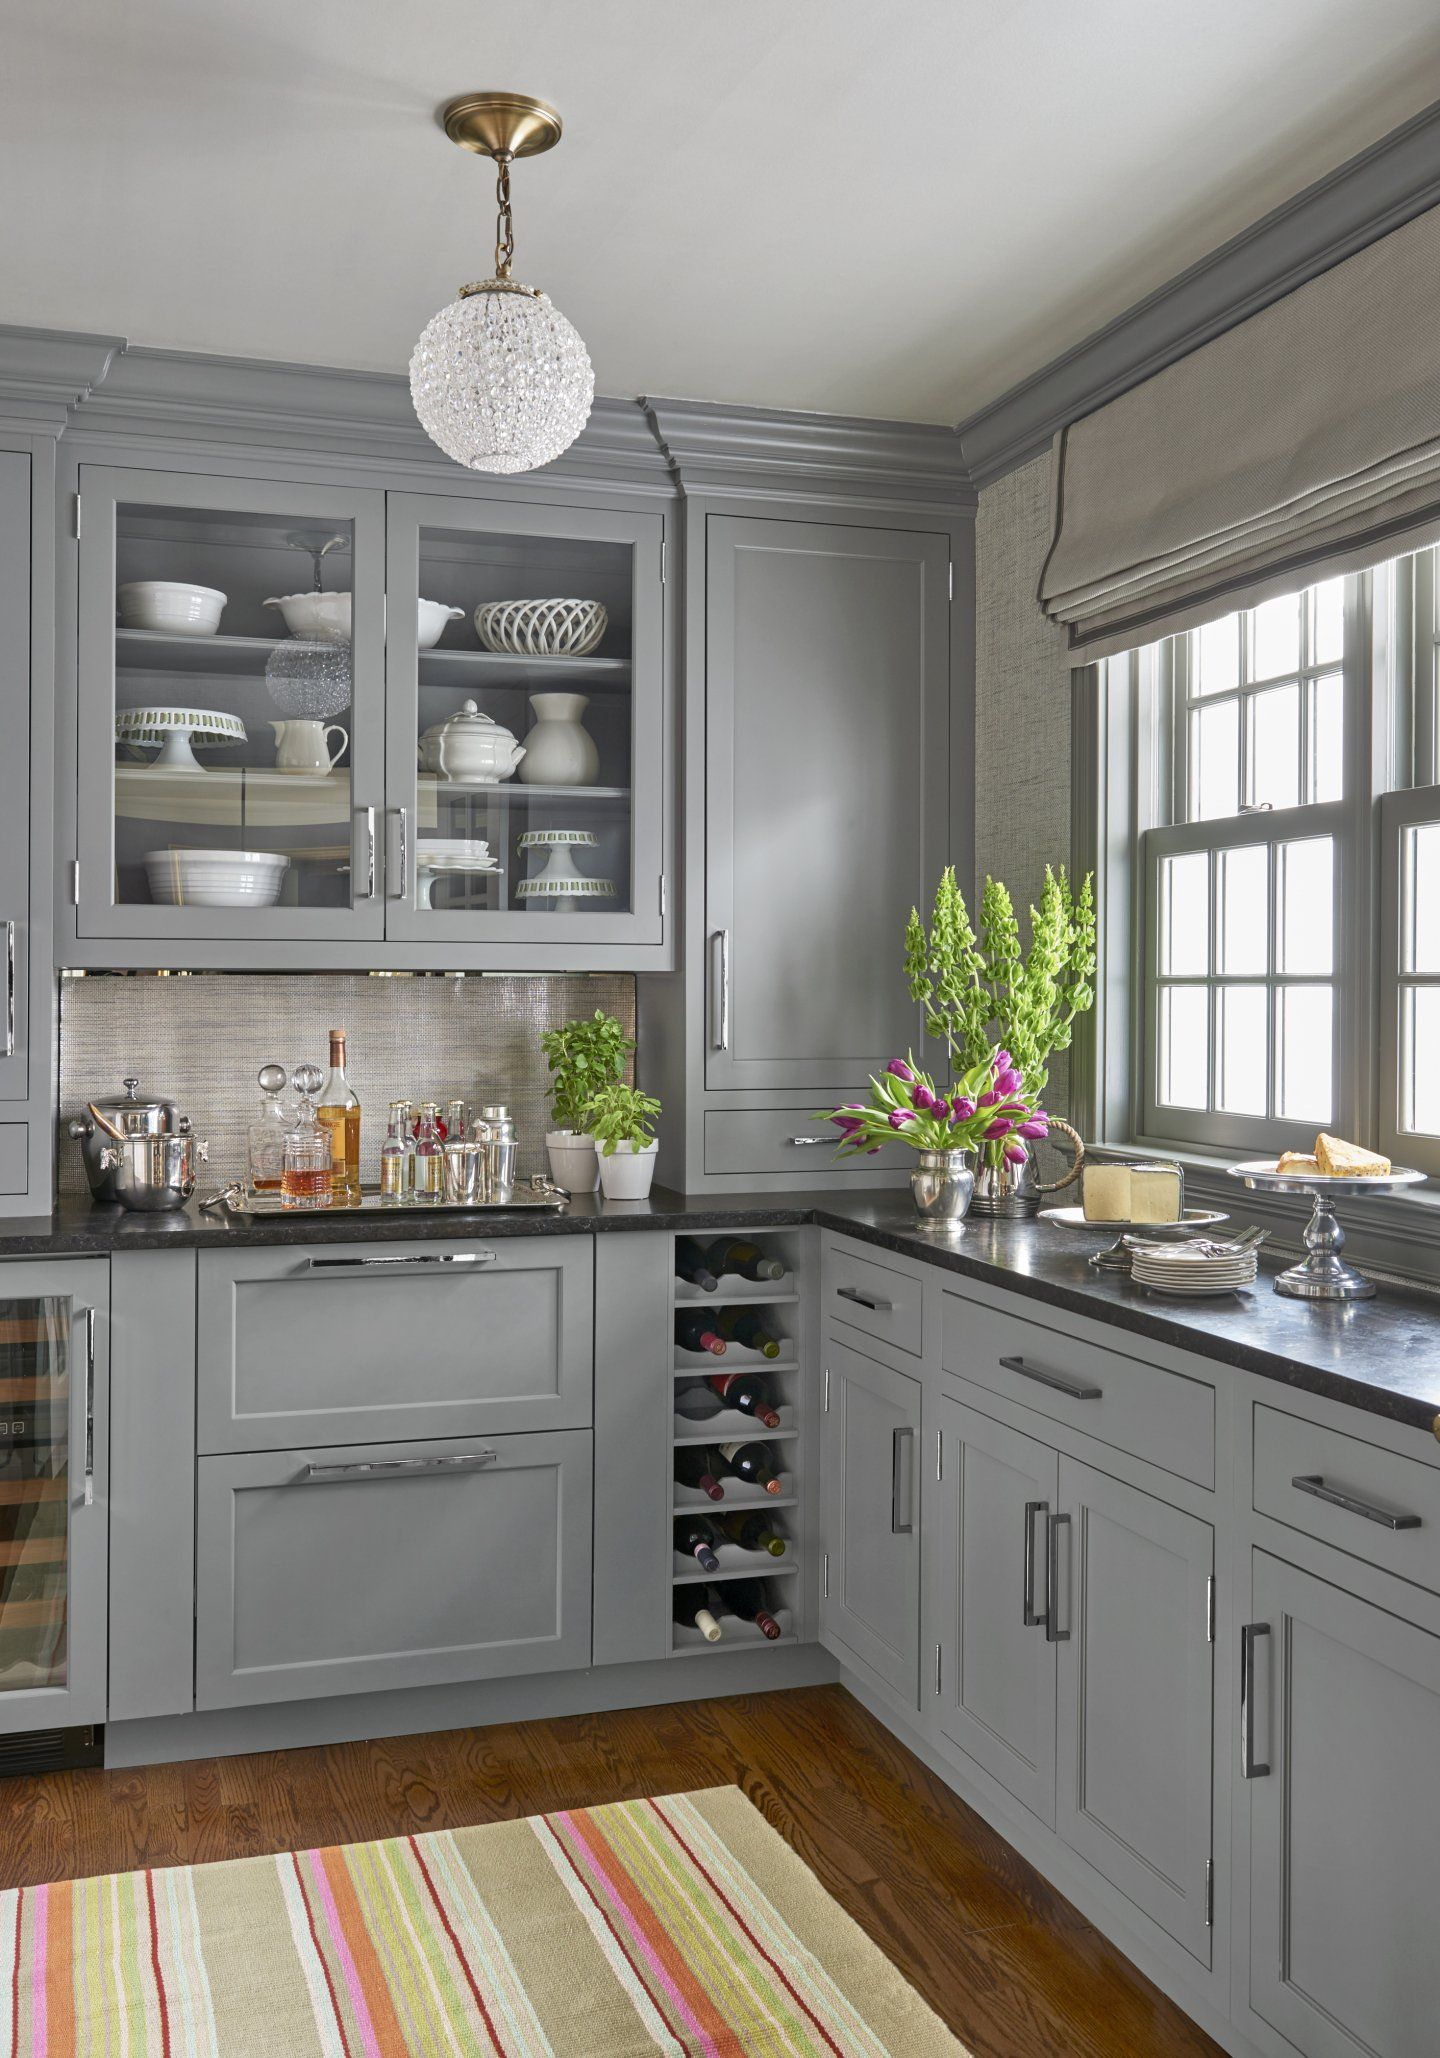 S kitchen turned major multitasker black granite countertops